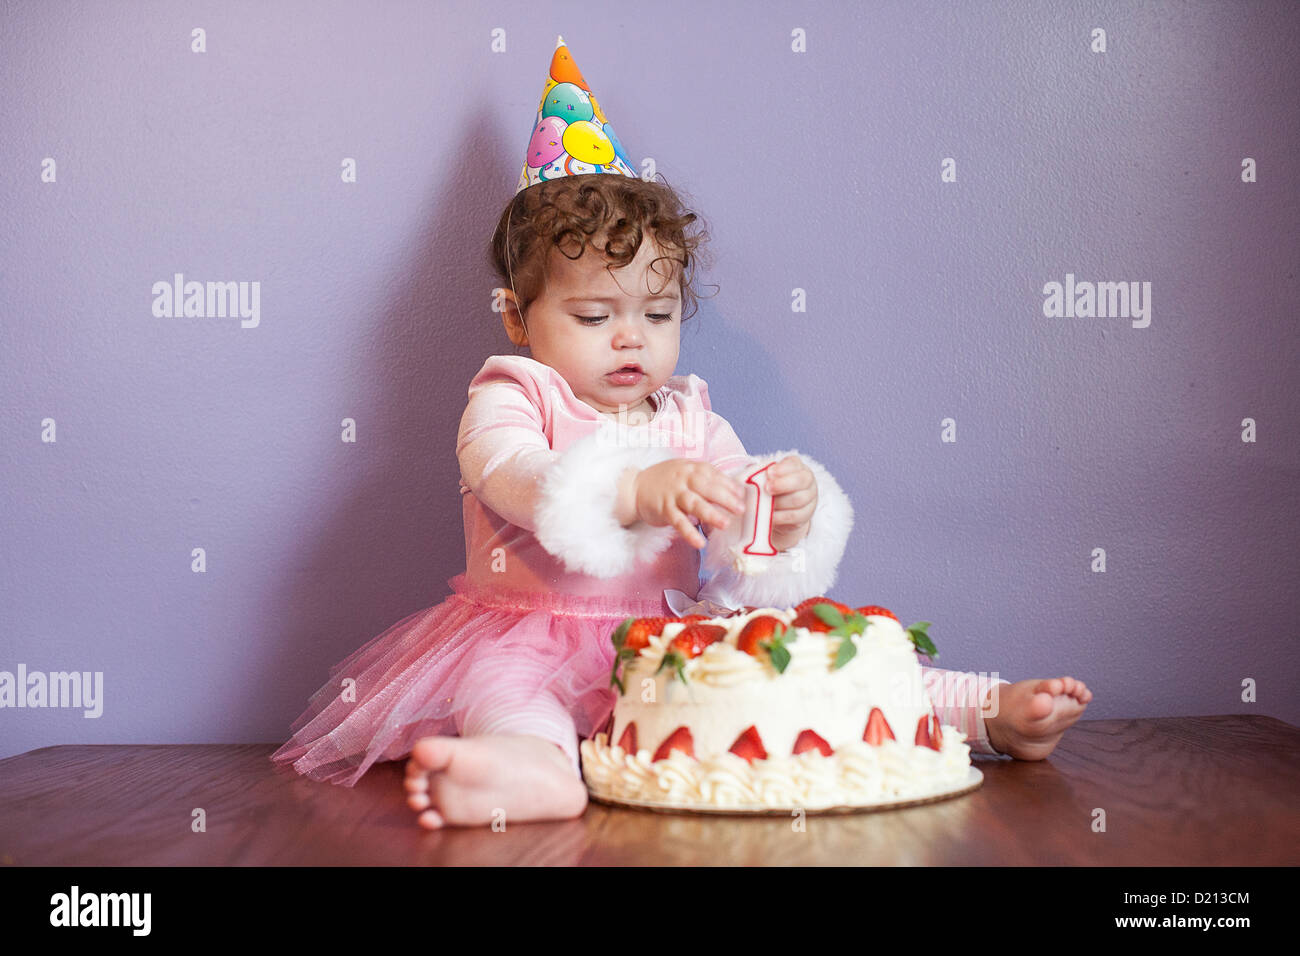 Cute baby girl wearing a party hat eating and playing with a